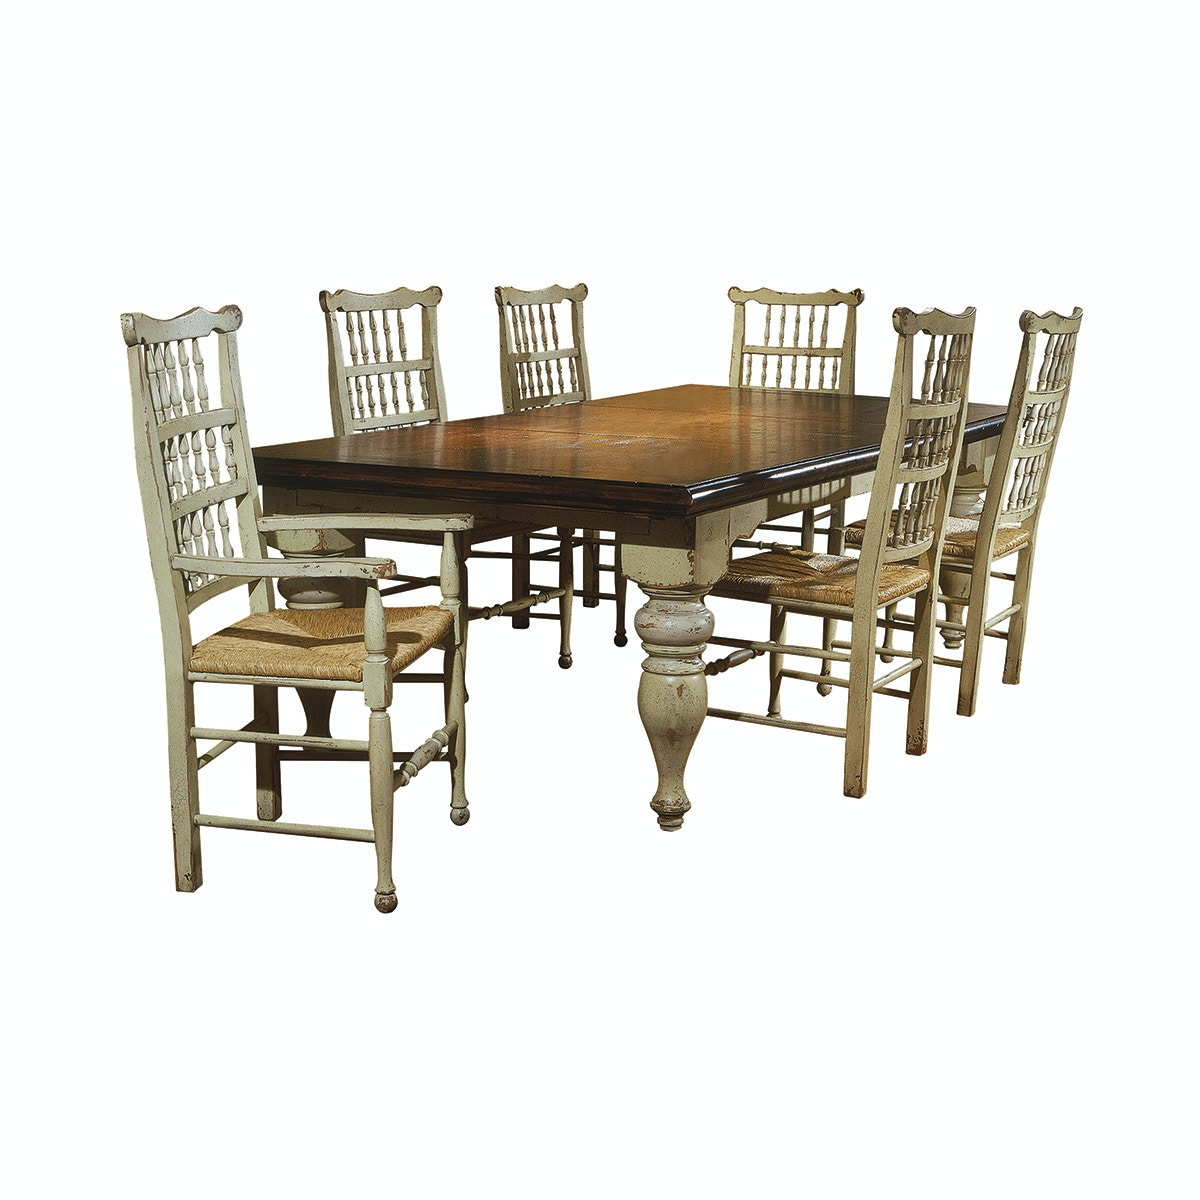 Ordinaire Habersham Home Harvest Table W/Two Leaves HB371010 From Walter E. Smithe  Furniture +